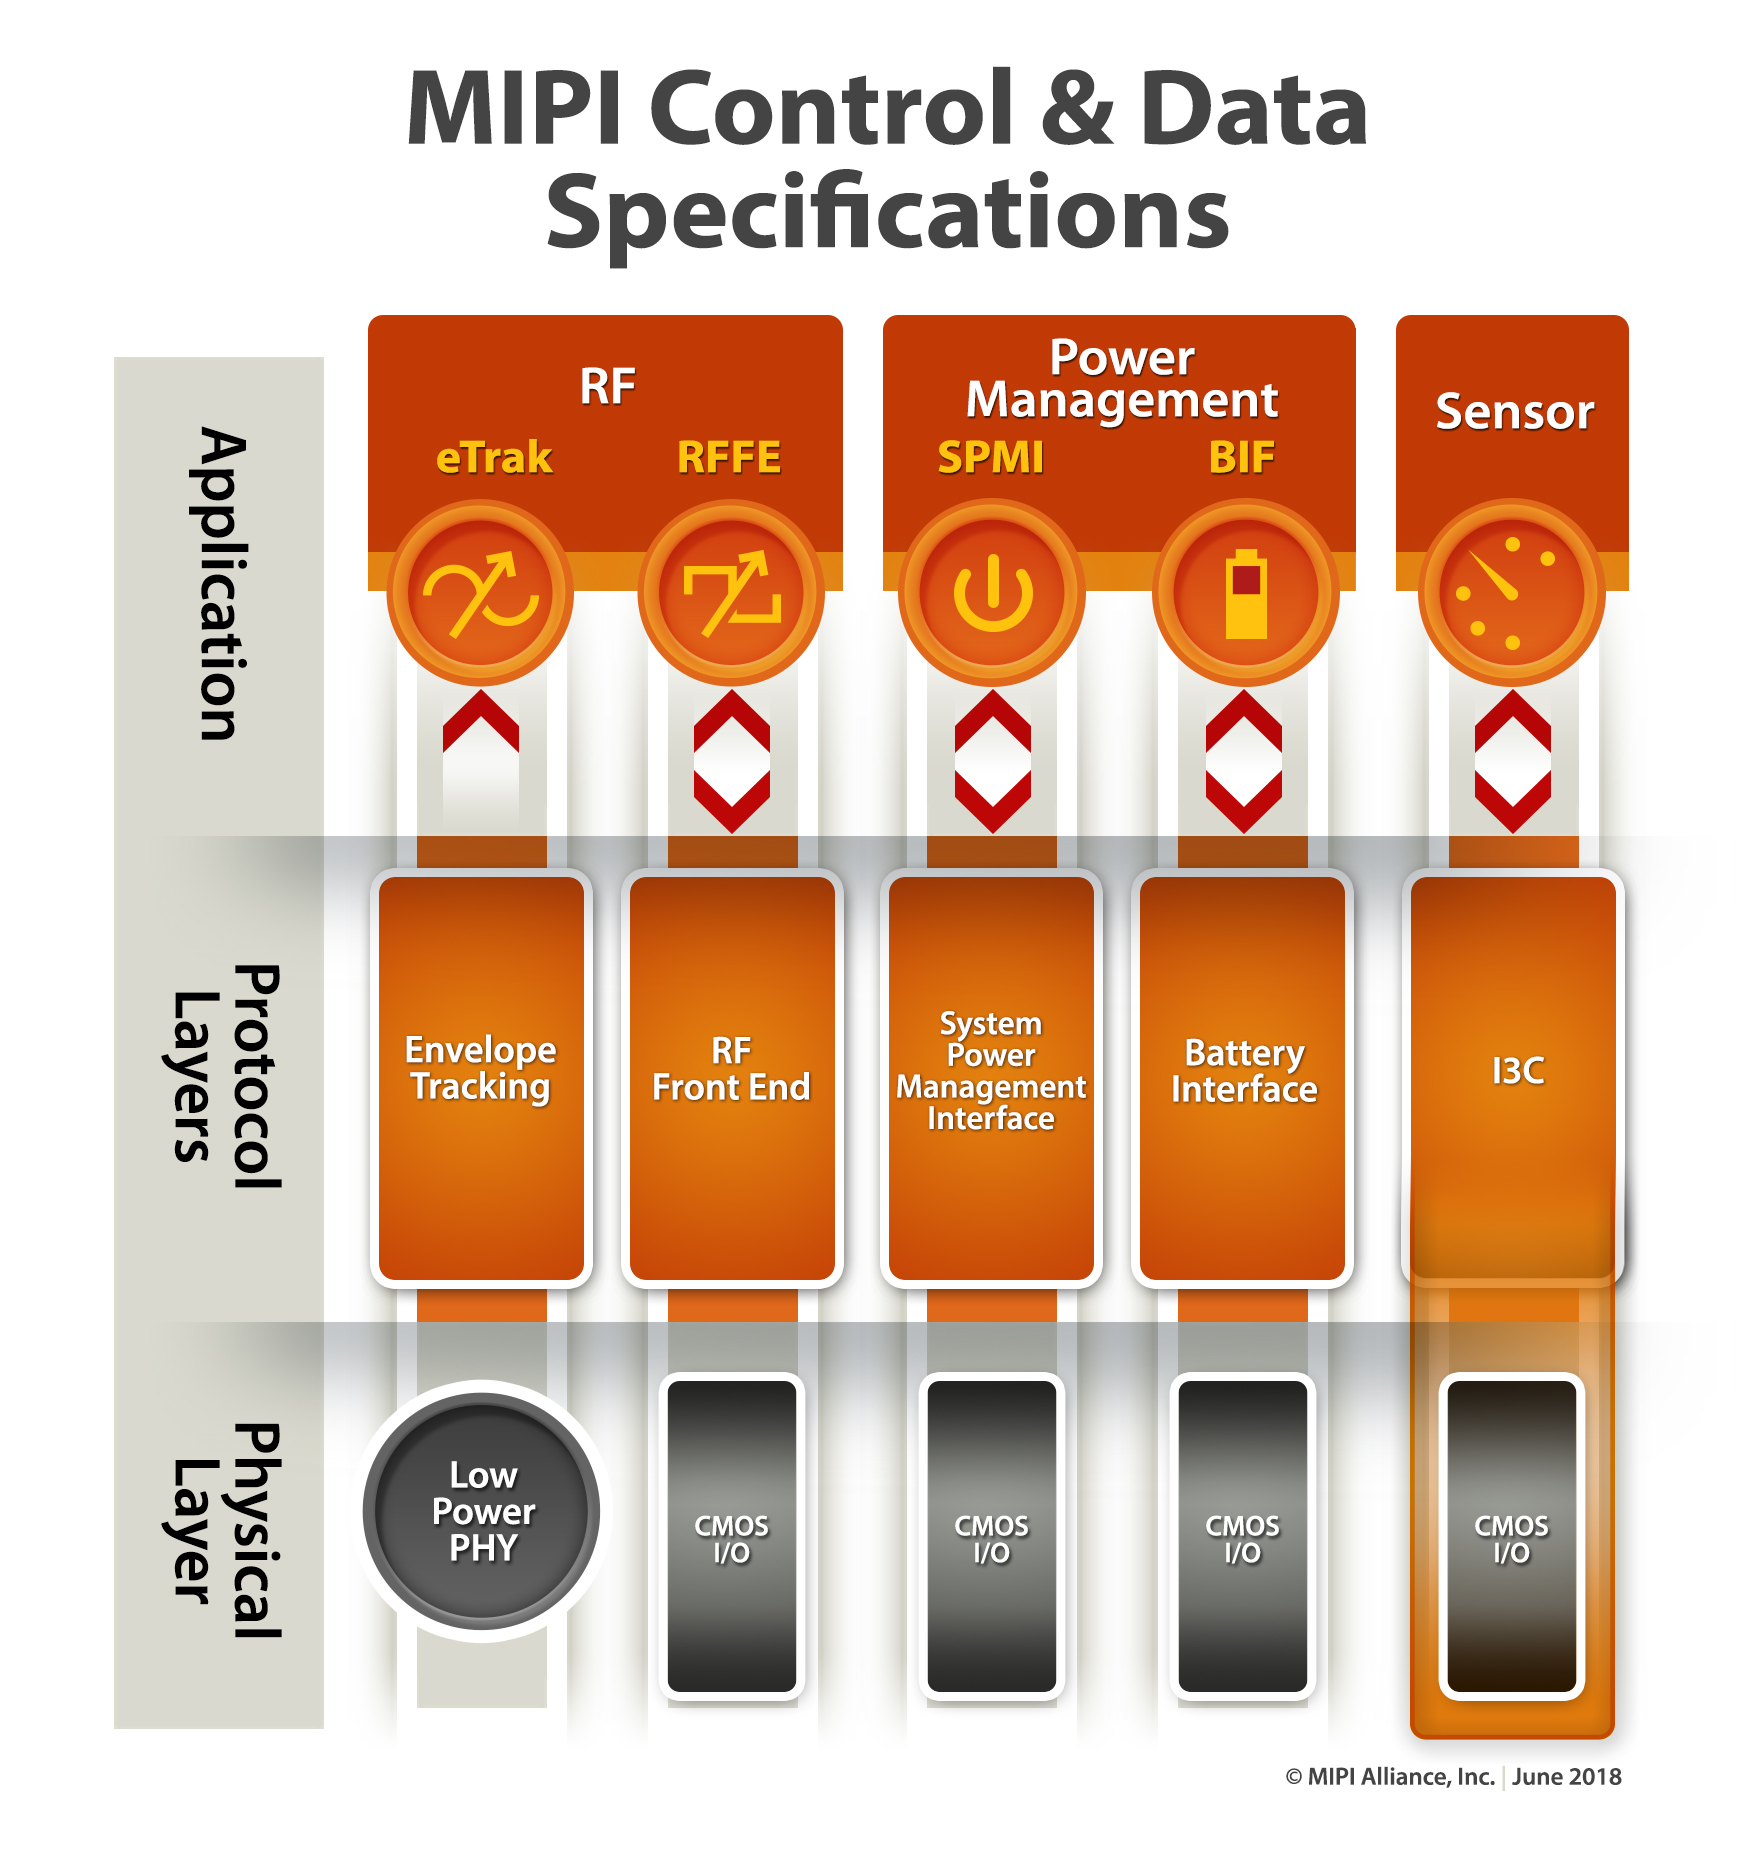 MIPI Control/Data Specifications Diagram